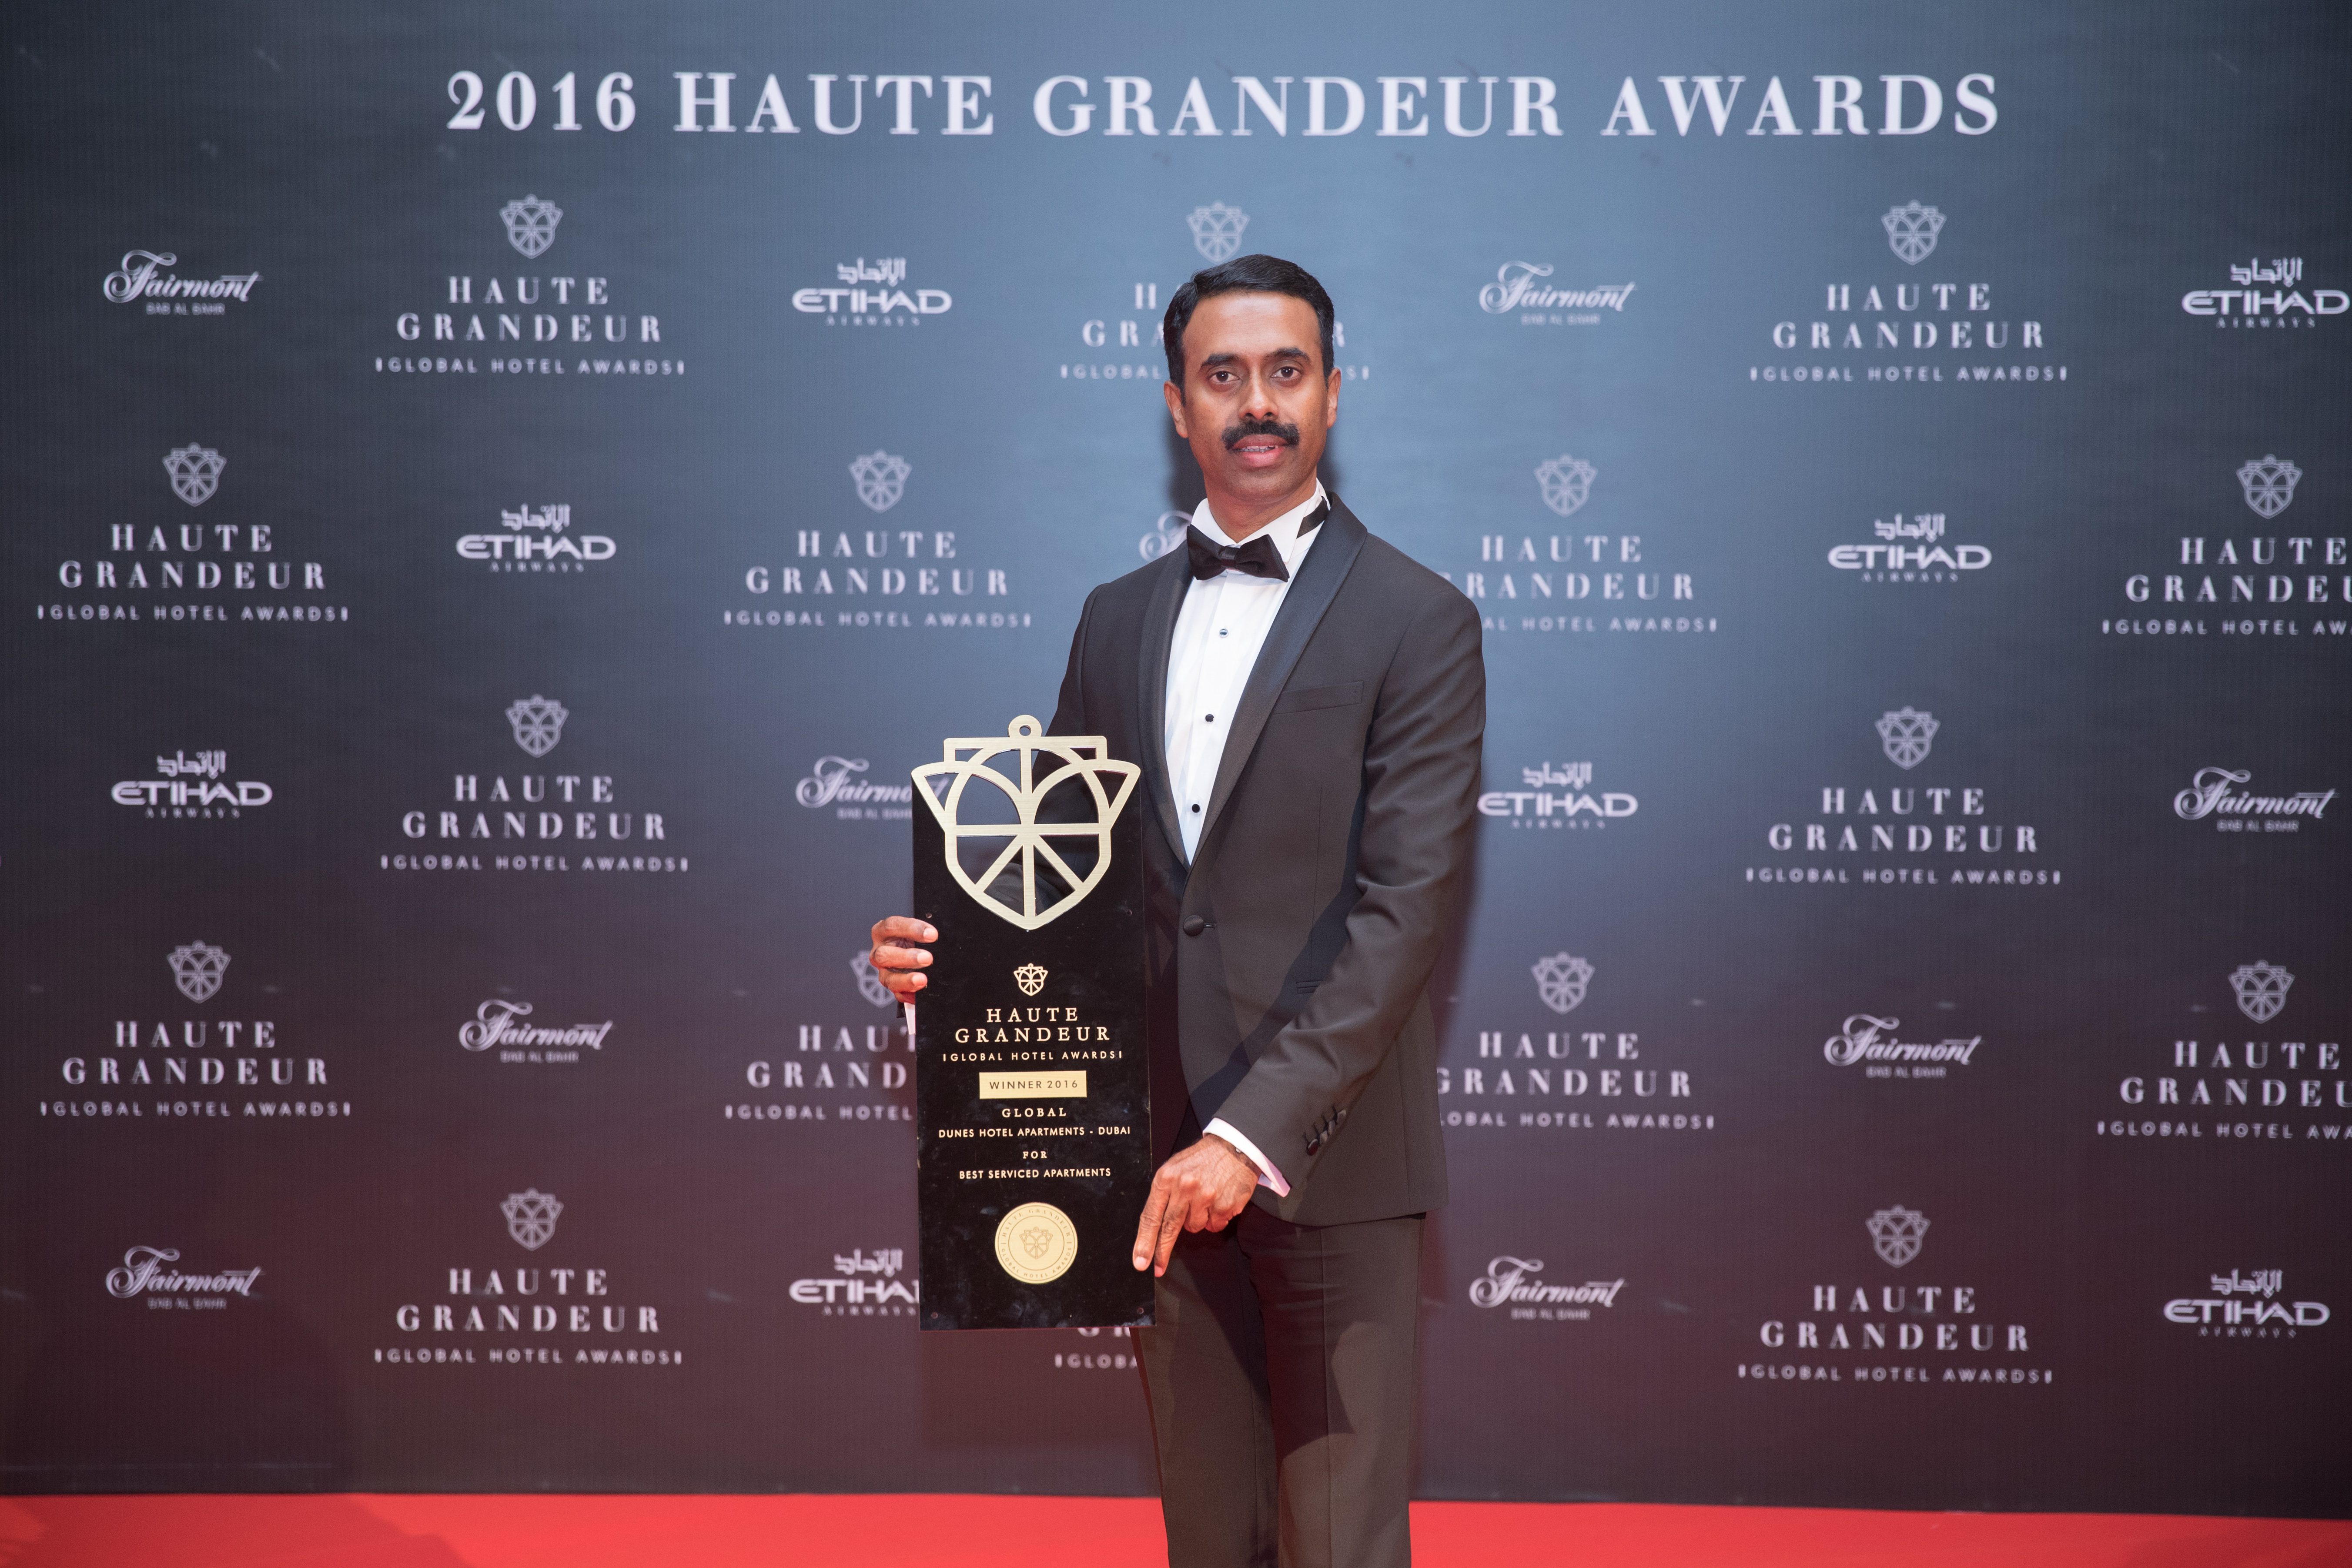 Faisal Abdul Rahman, General Manager, Dunes Hotel Apartments with the awards